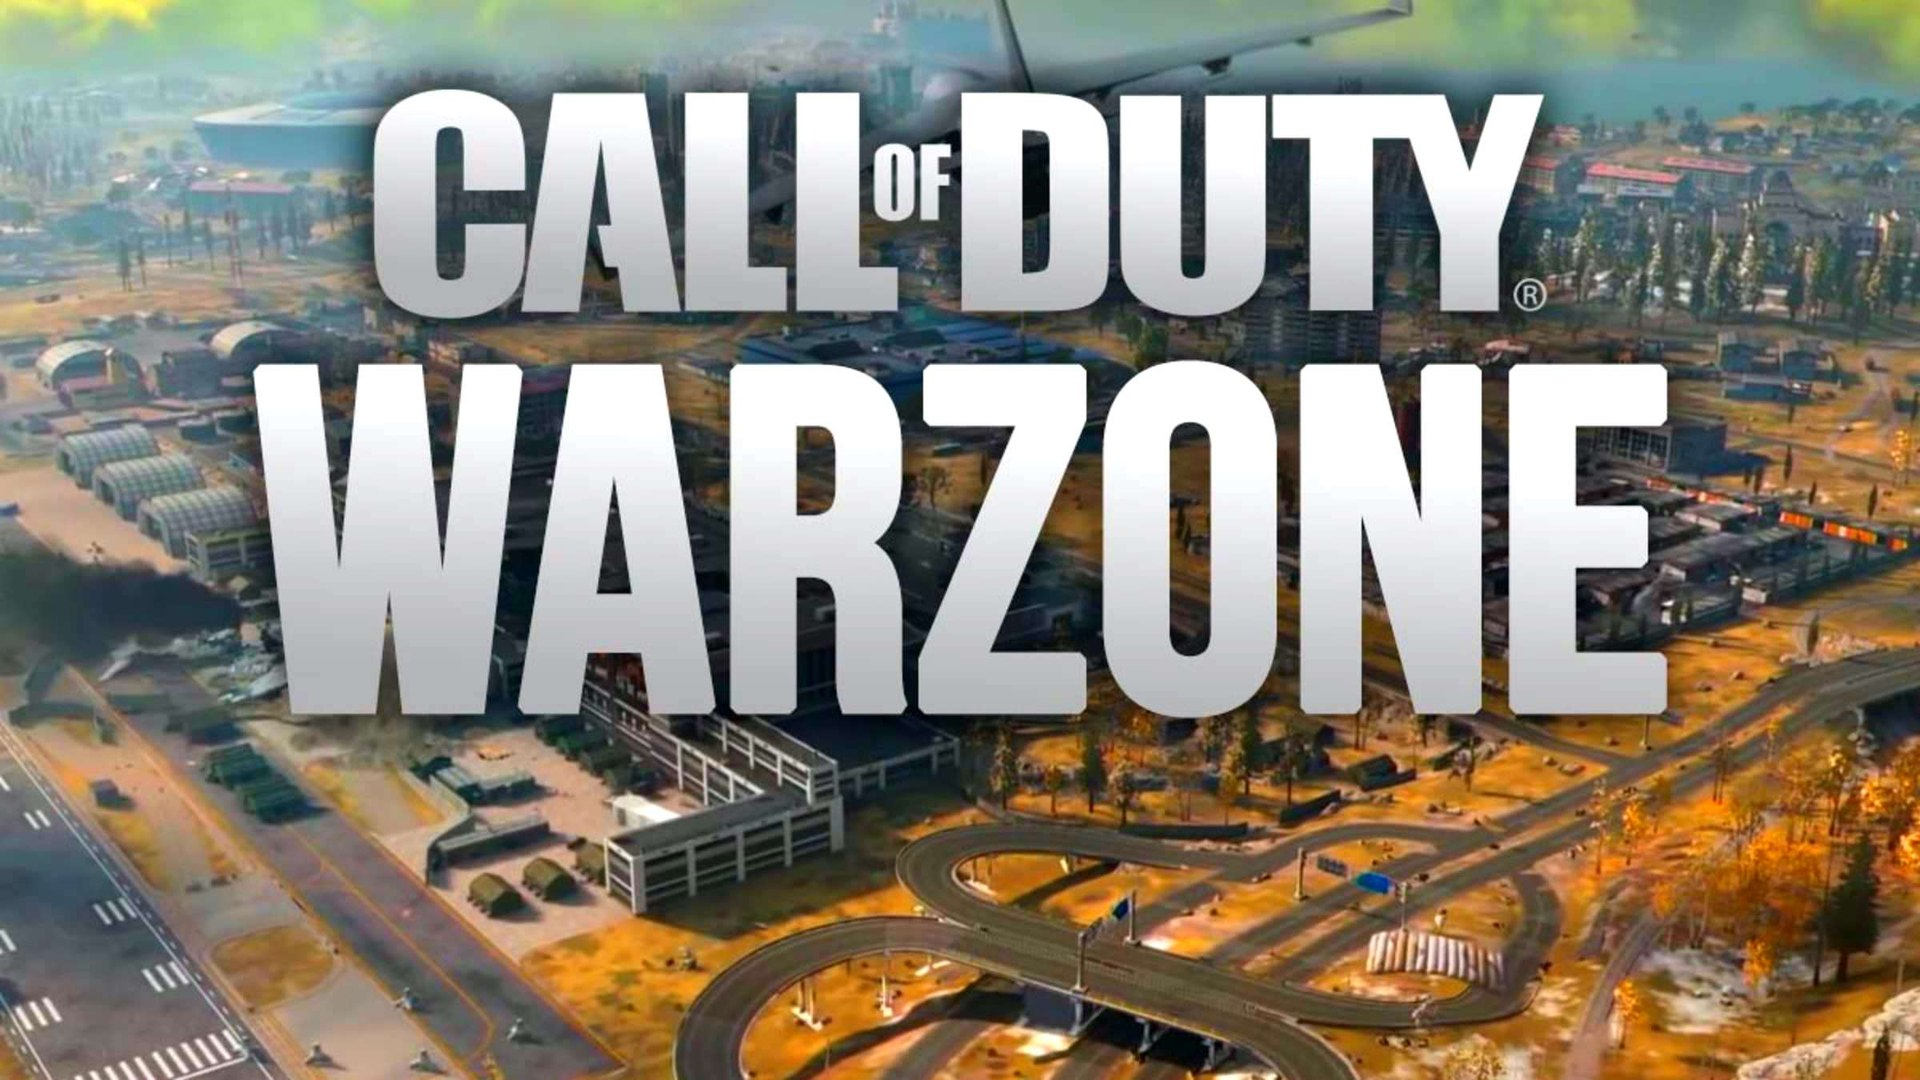 call of duty warzone gameplay 1920x1080